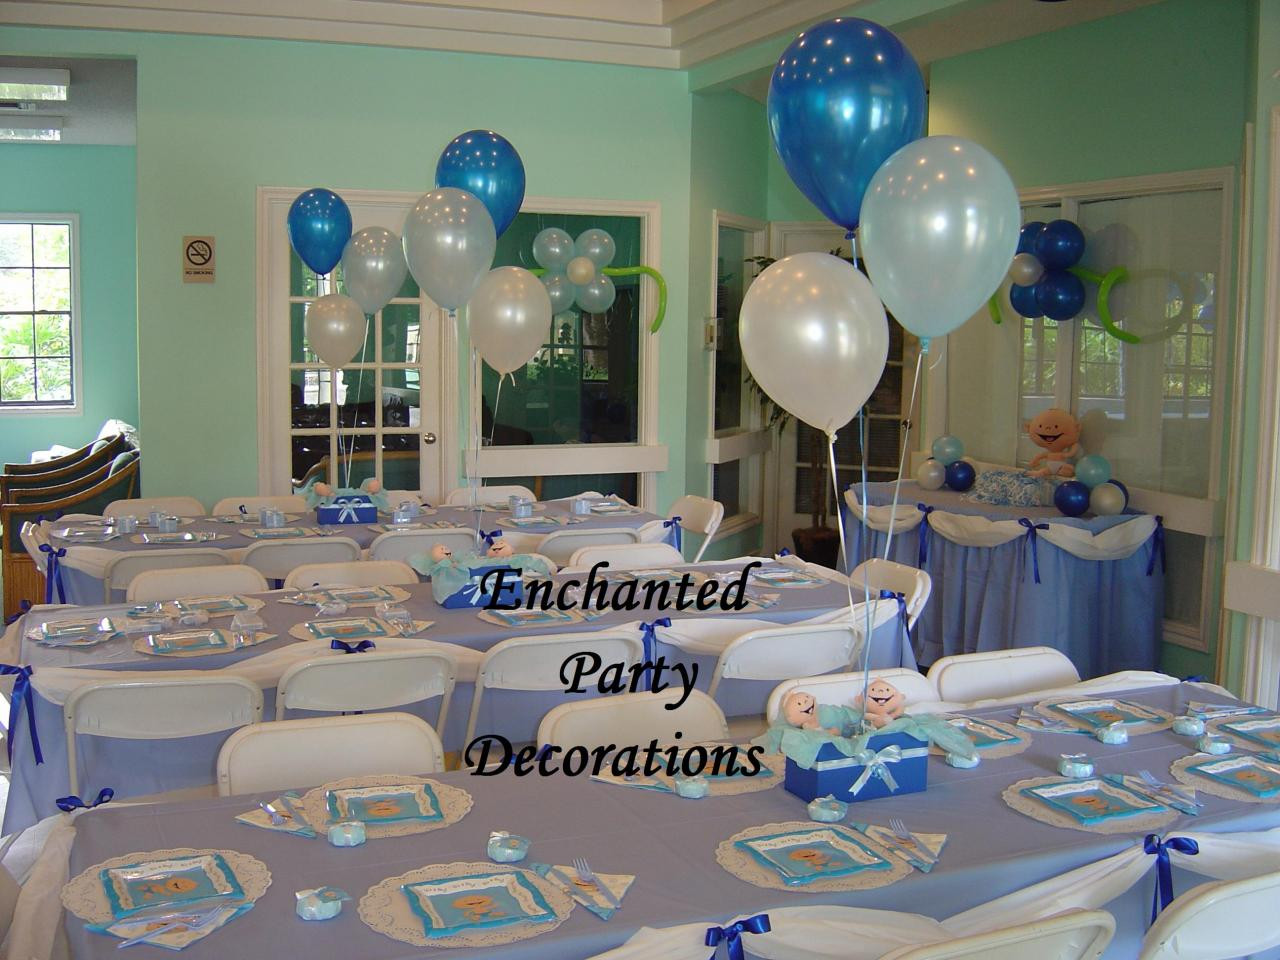 Best ideas about Baby Shower Table Decoration . Save or Pin Baby Shower Table Decorations Now.